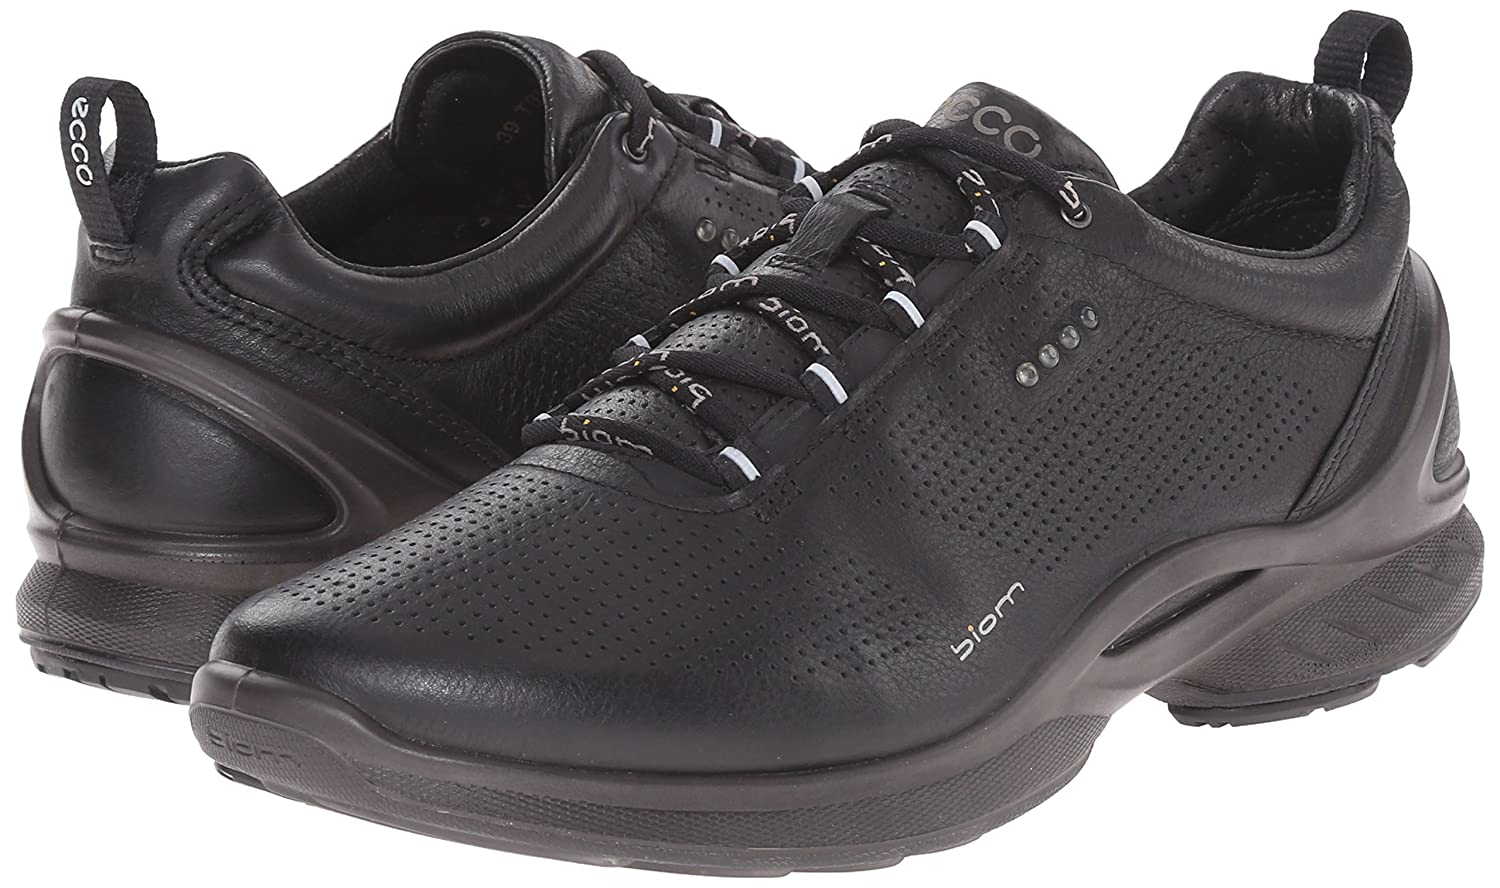 ECCO Women's Biom Fjuel Train Oxford US|Black B00VJ5DVQ0 38 EU/7-7.5 M US|Black Oxford 01565a